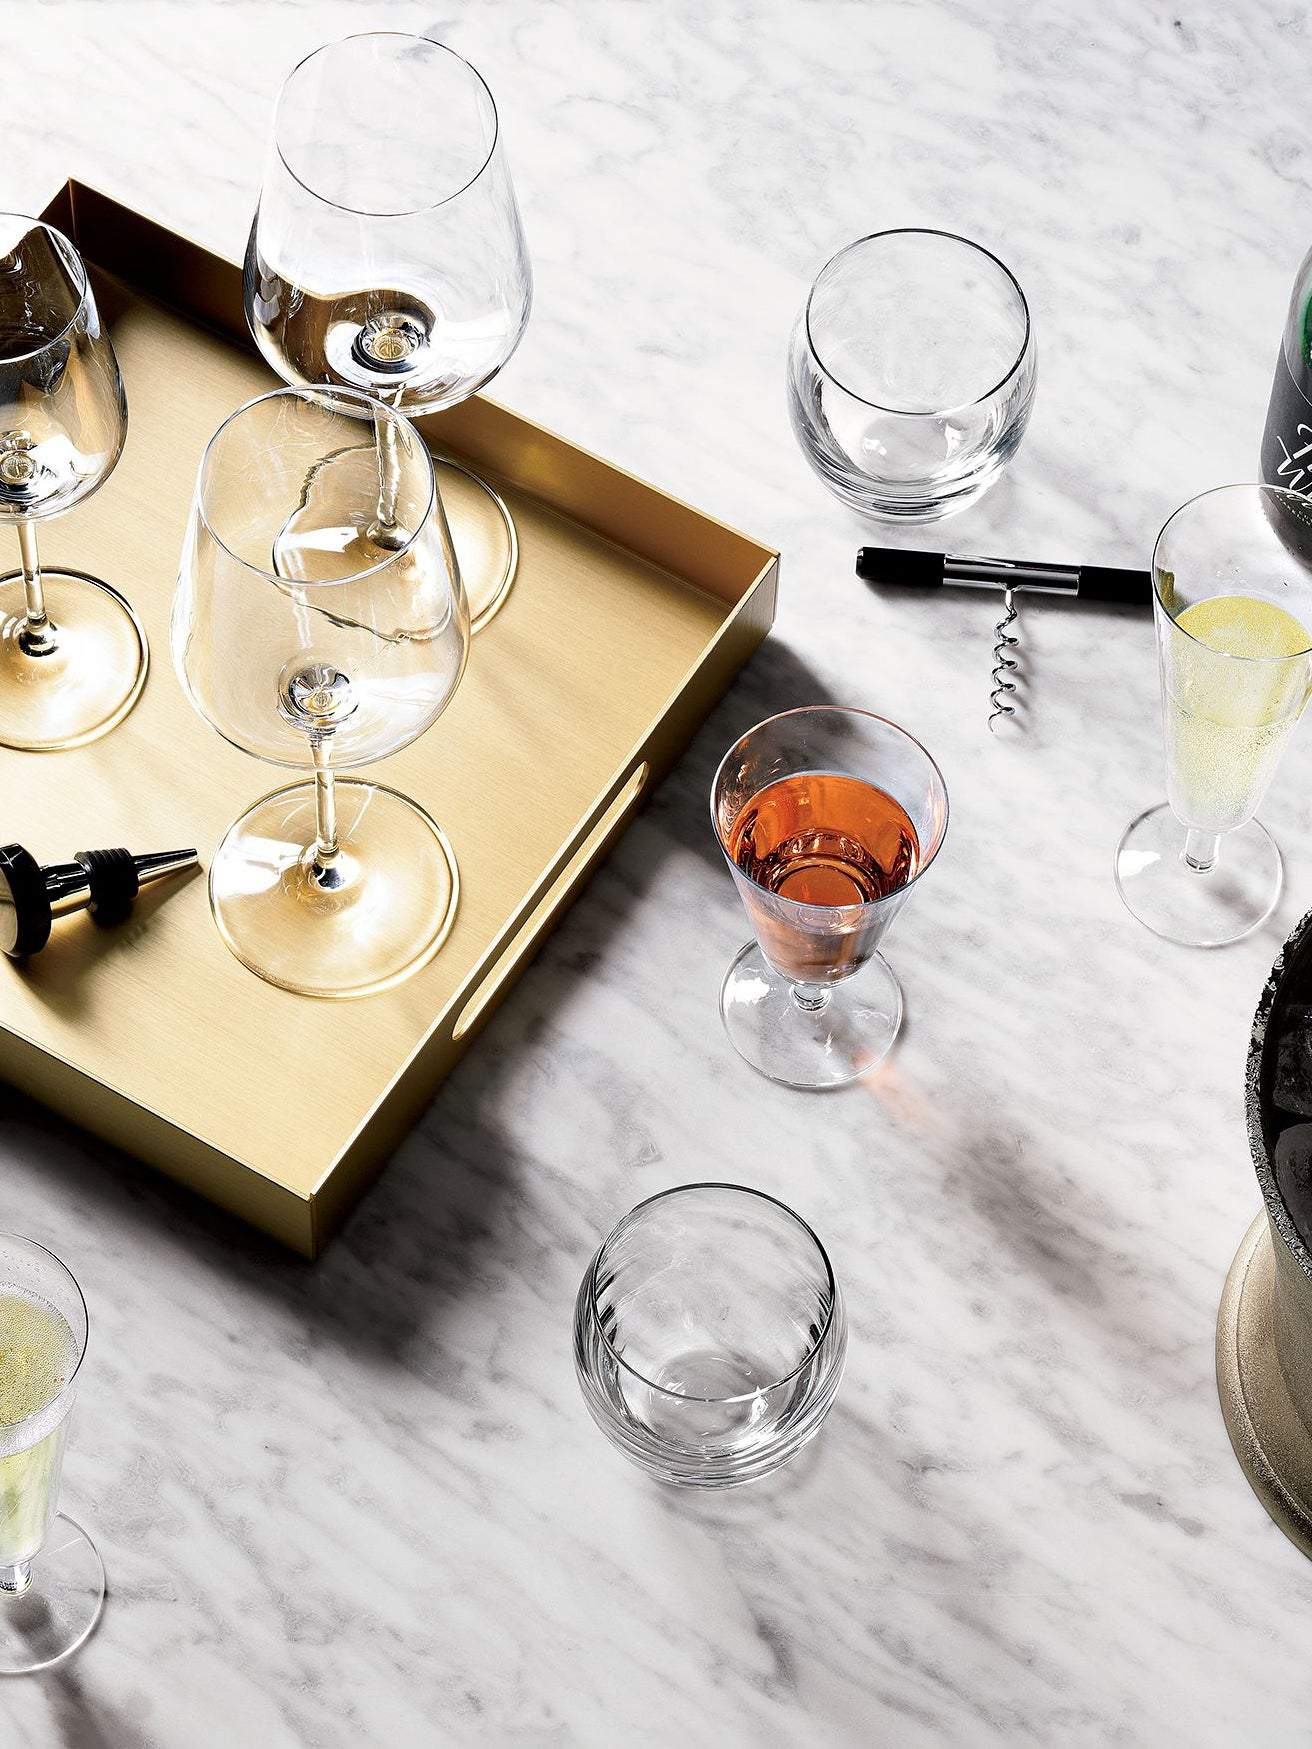 cb2-wine-glasses-domino